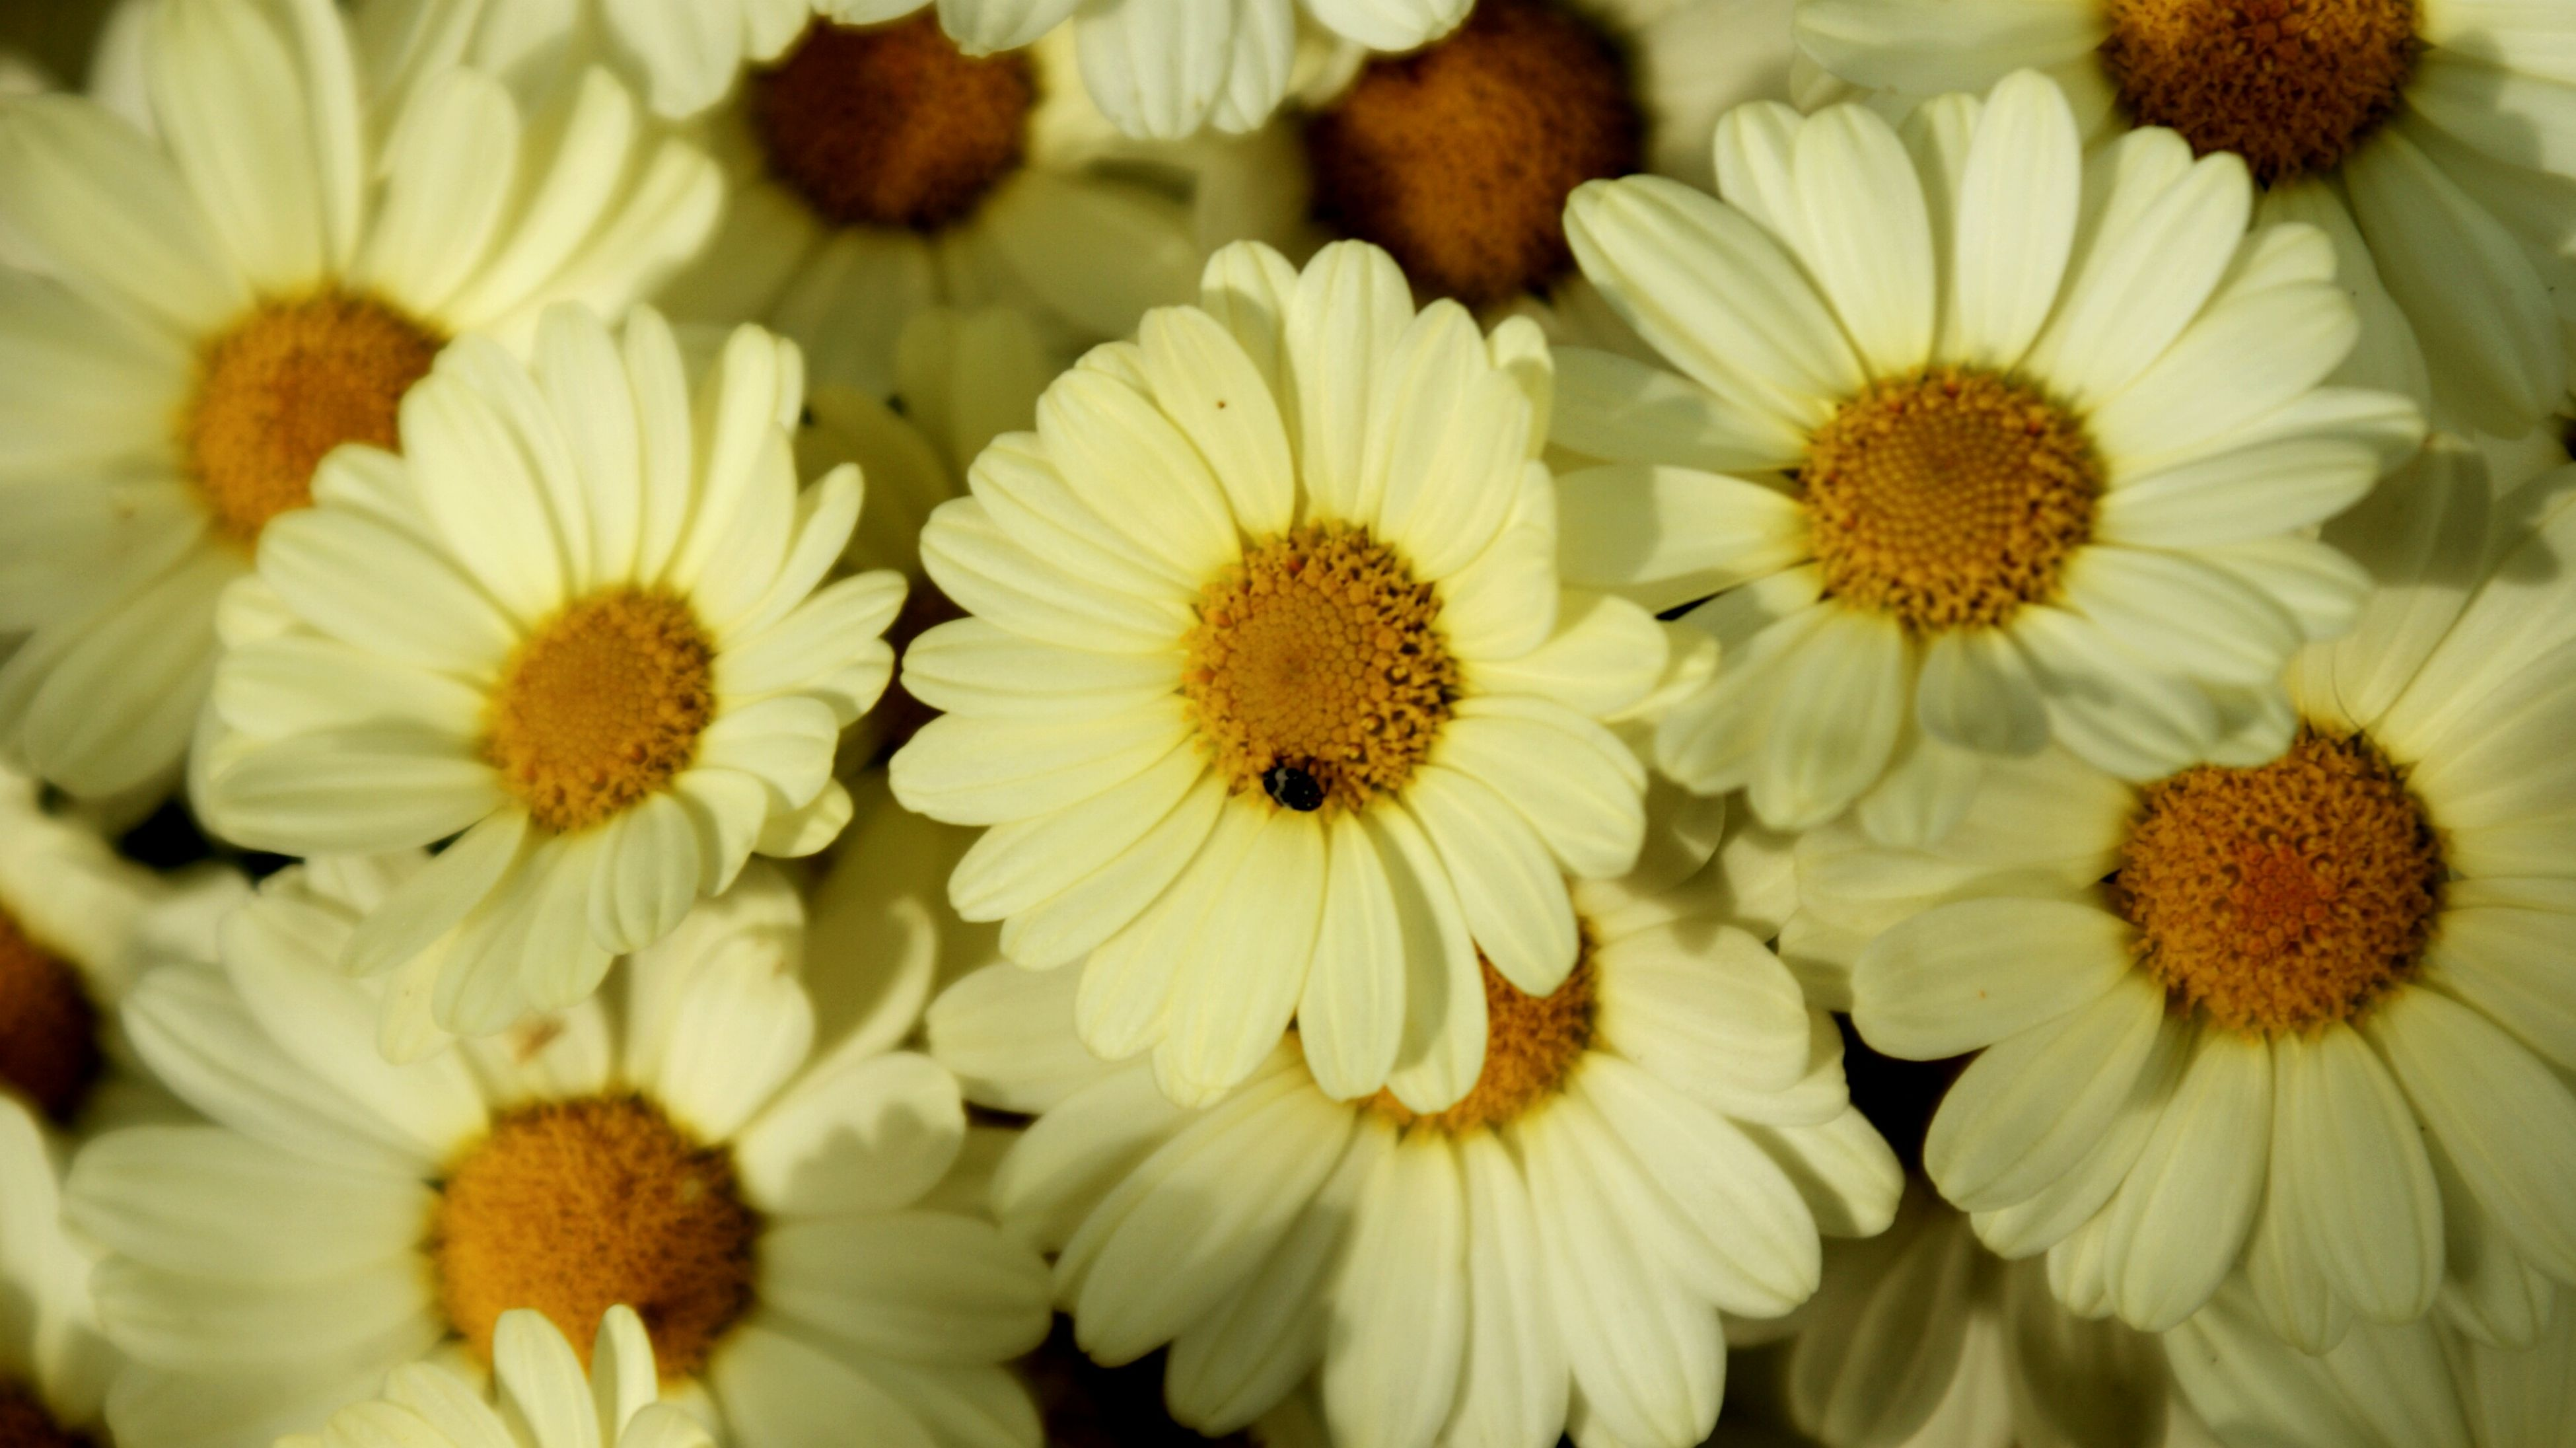 flower, freshness, petal, flower head, fragility, beauty in nature, white color, growth, full frame, nature, blooming, pollen, backgrounds, close-up, high angle view, plant, in bloom, daisy, blossom, abundance